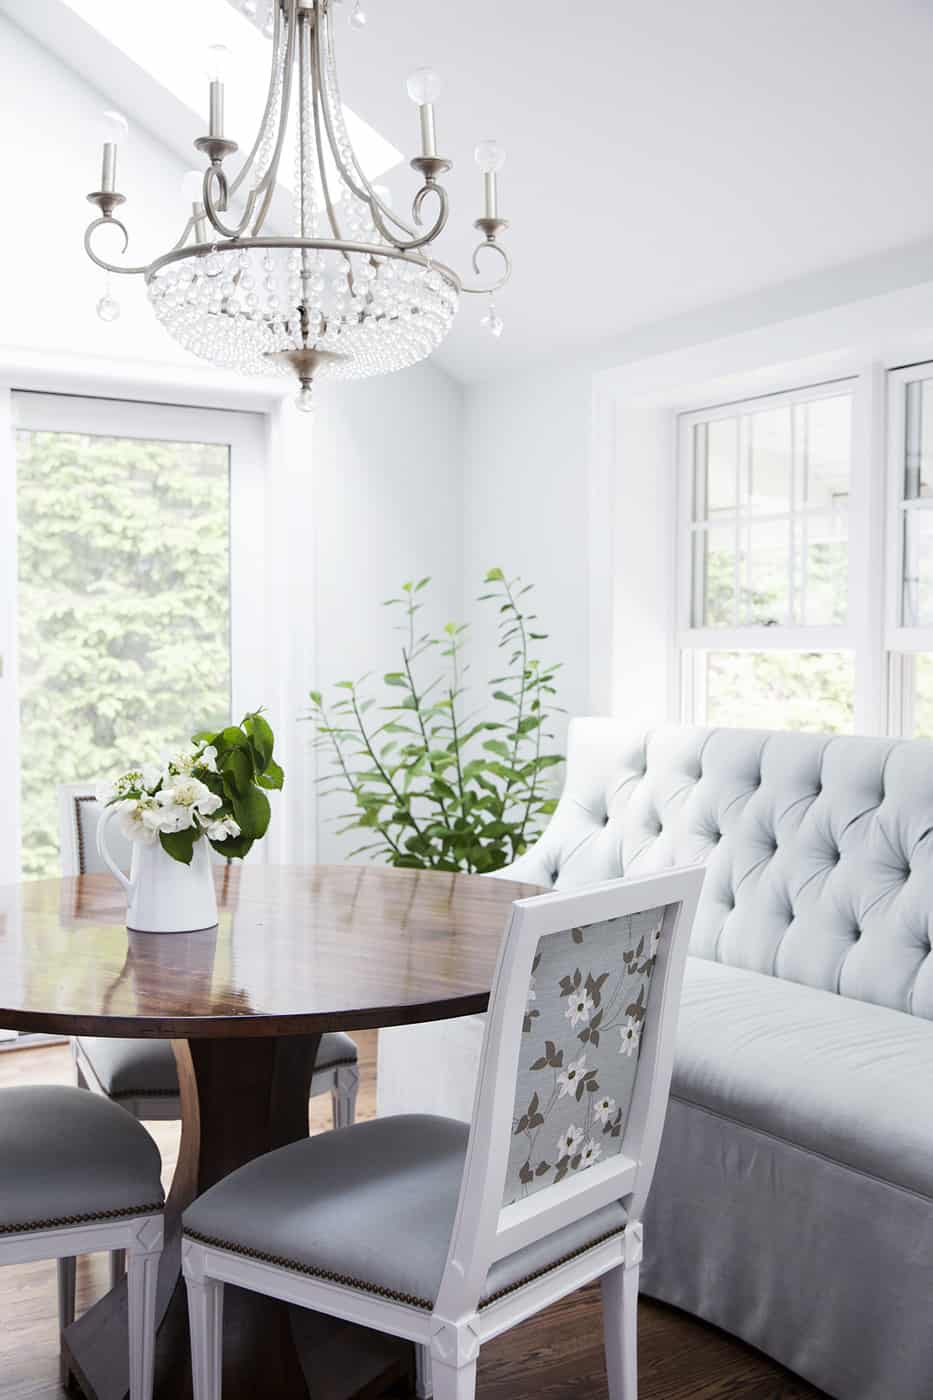 white and blue breakfast nook.jpg 2